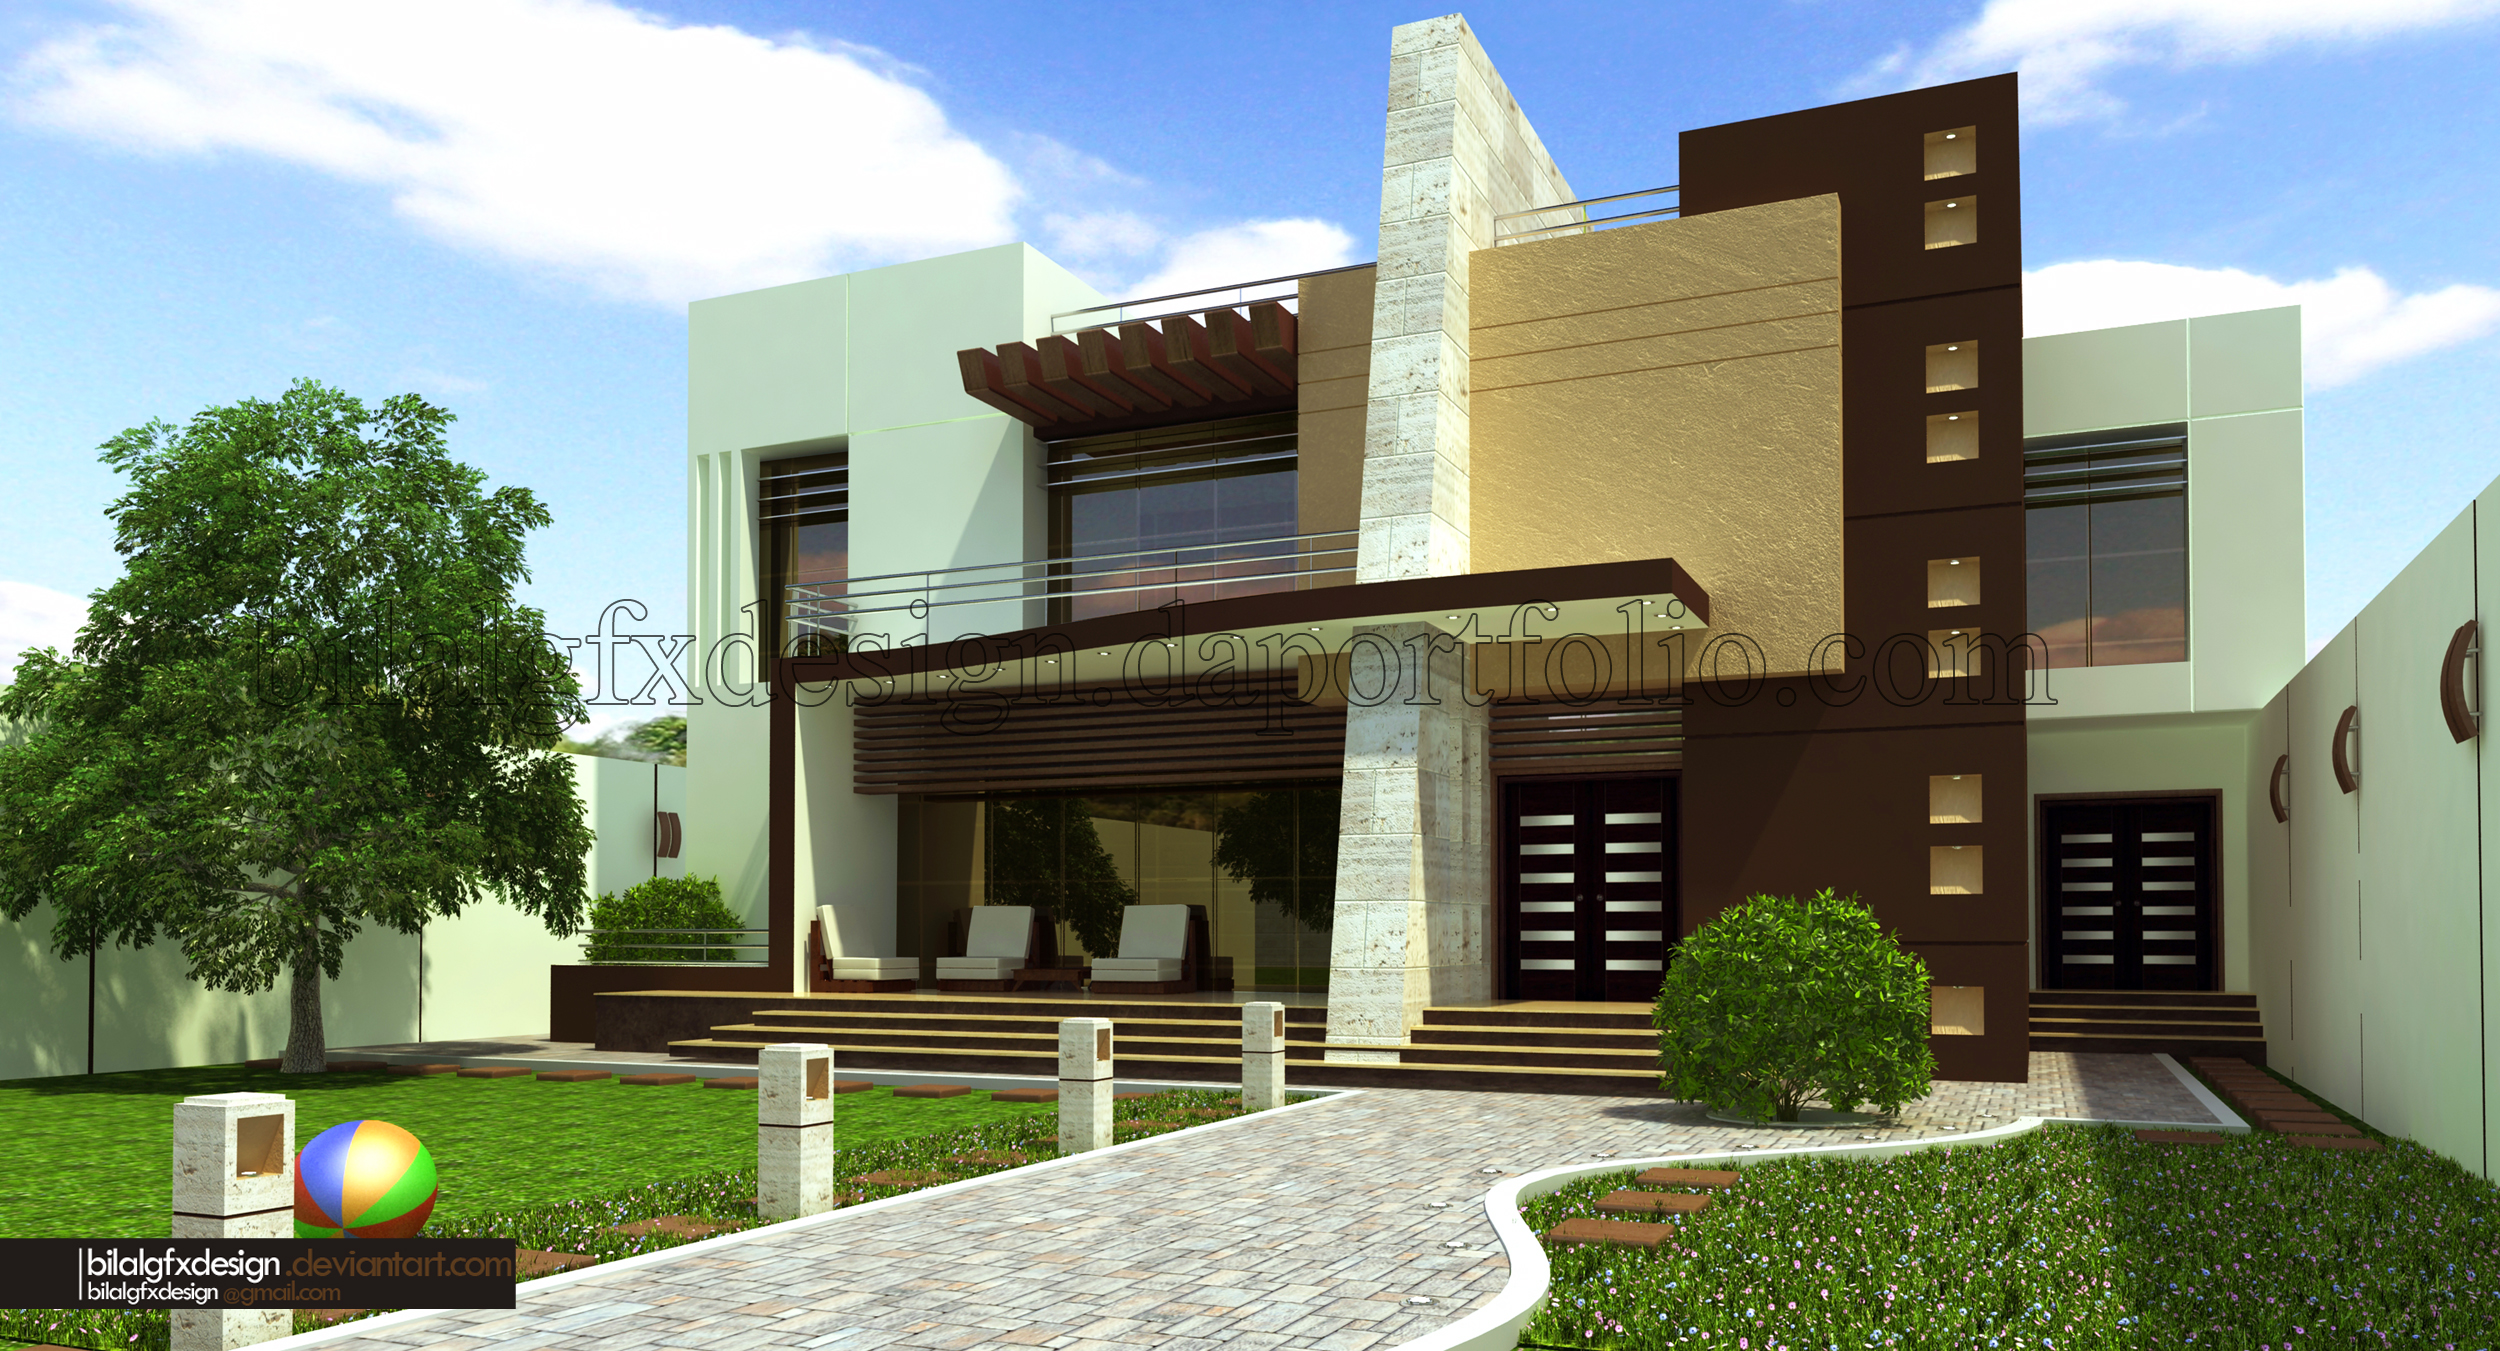 Modern villa 1 by bilalgfxdesign on deviantart Modern villa architecture design